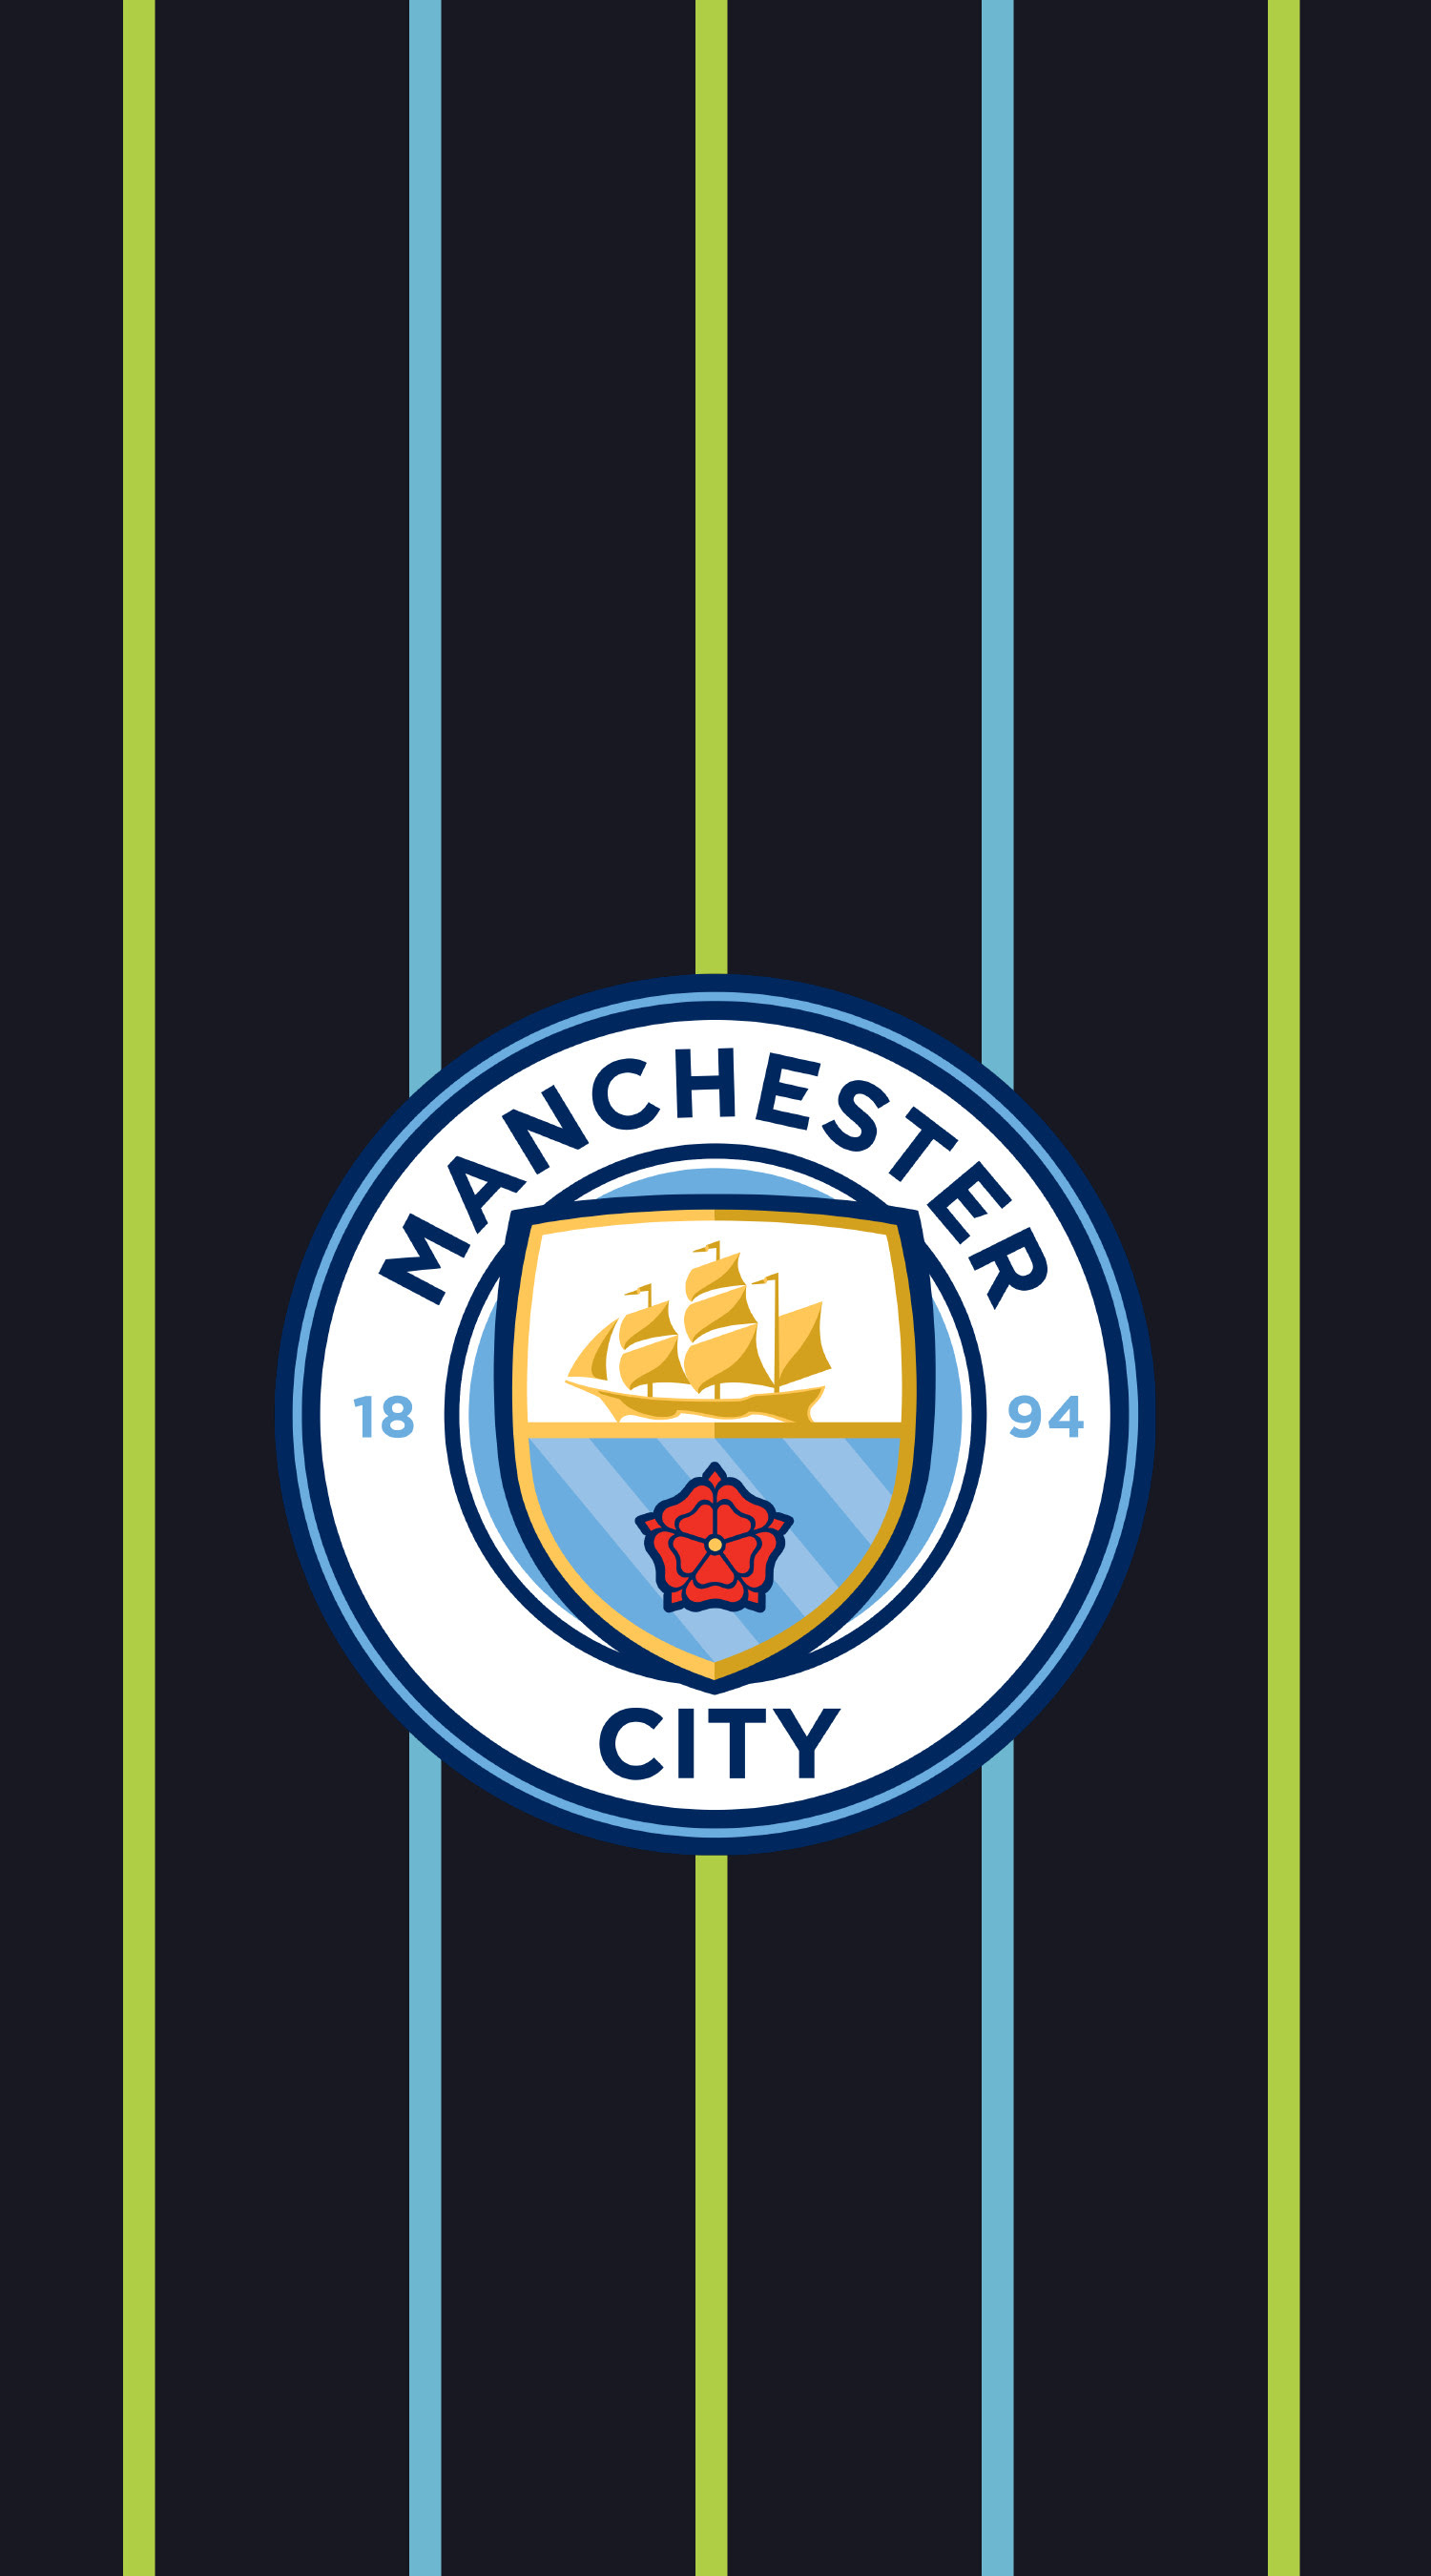 Manchester City Wallpaper 2018 (85+ images)